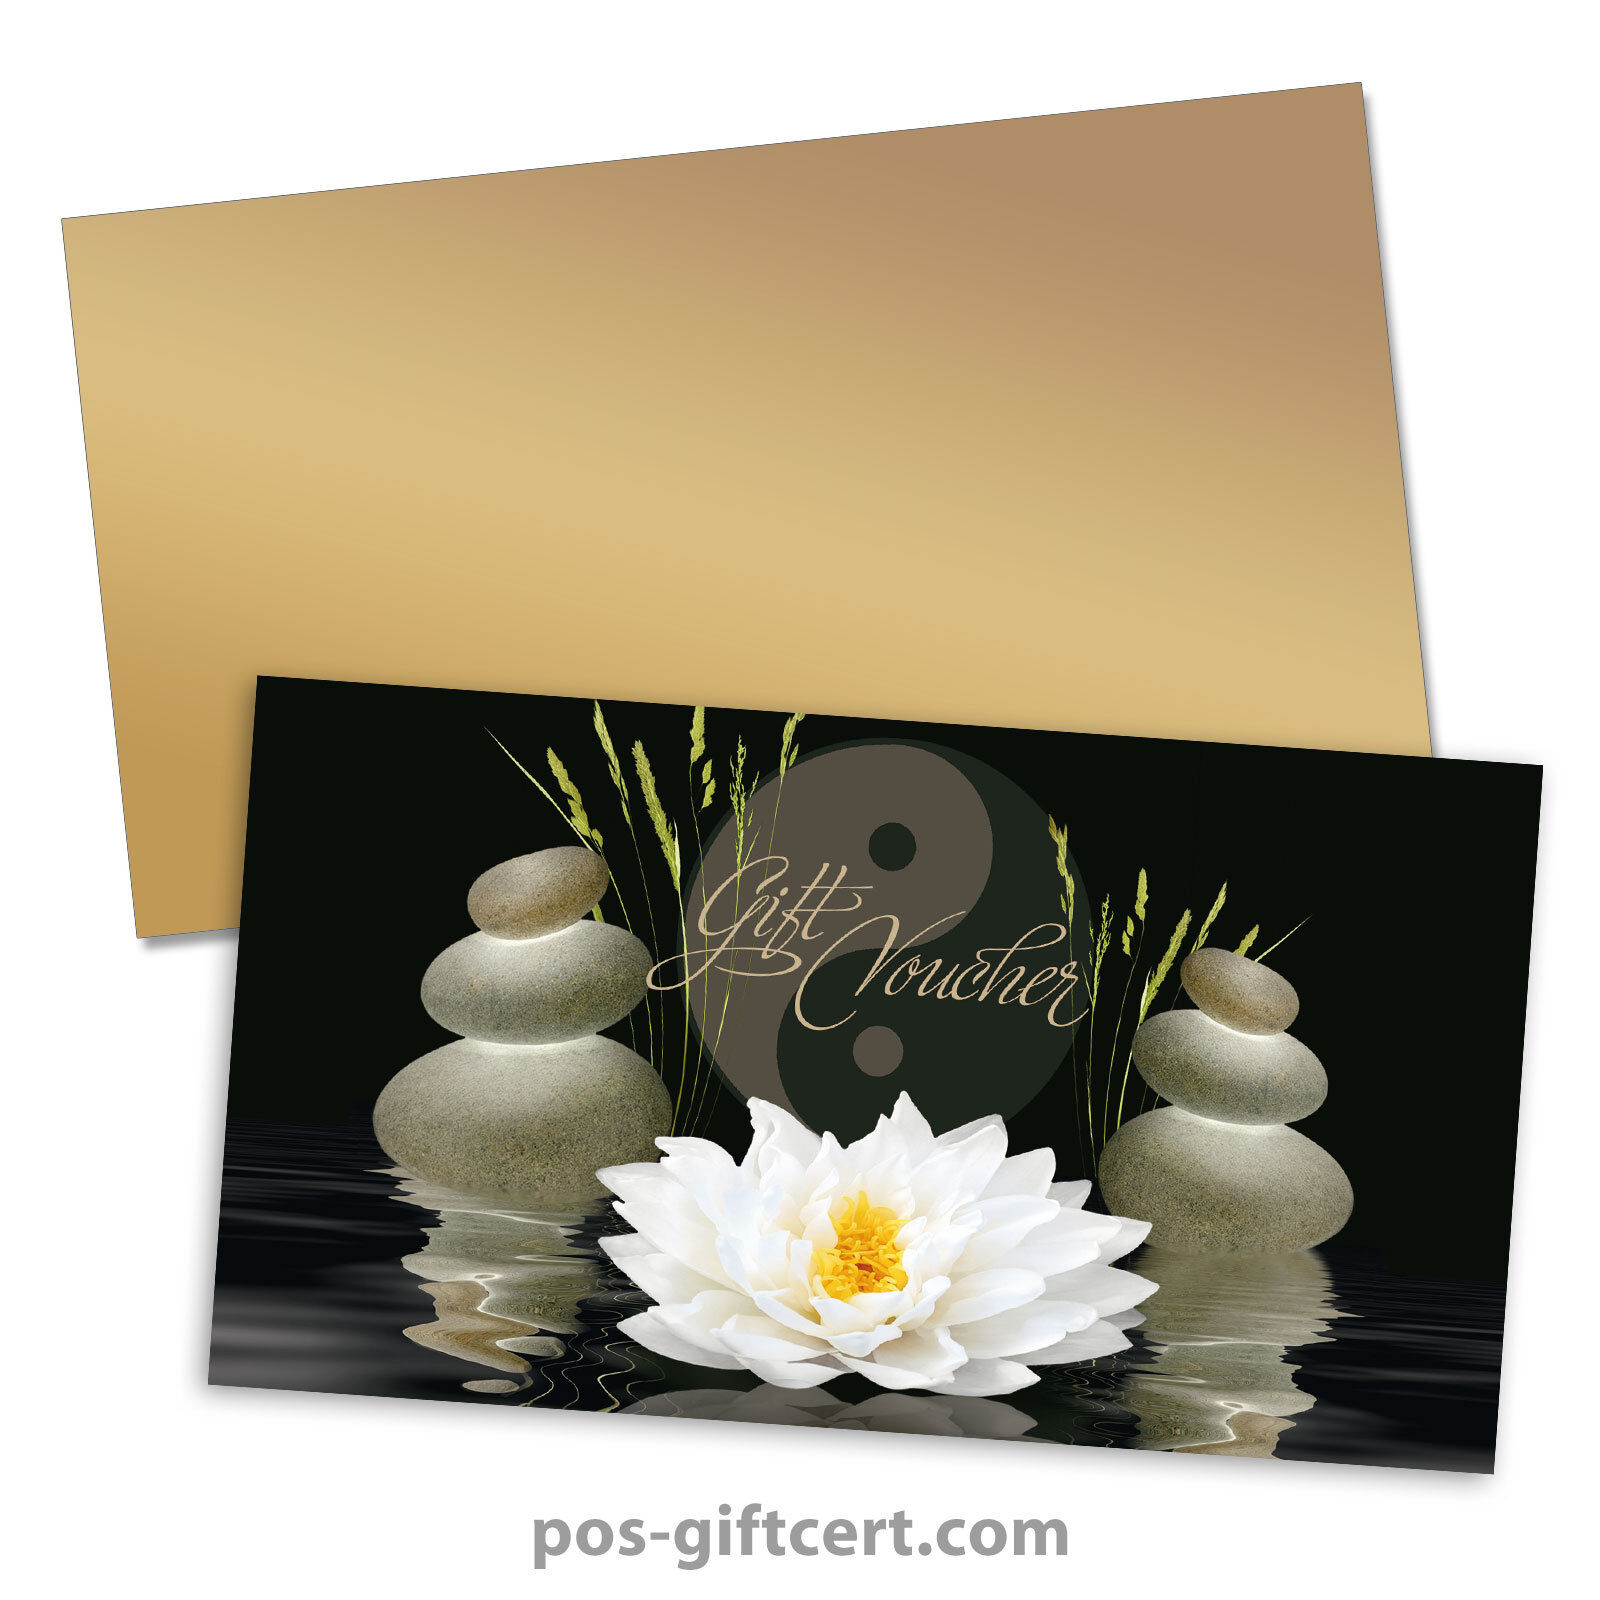 Gift vouchers  envelopes for physiotherapy, massage, wellness, spa MA1229GB | Bevorzugtes Material  | Große Auswahl